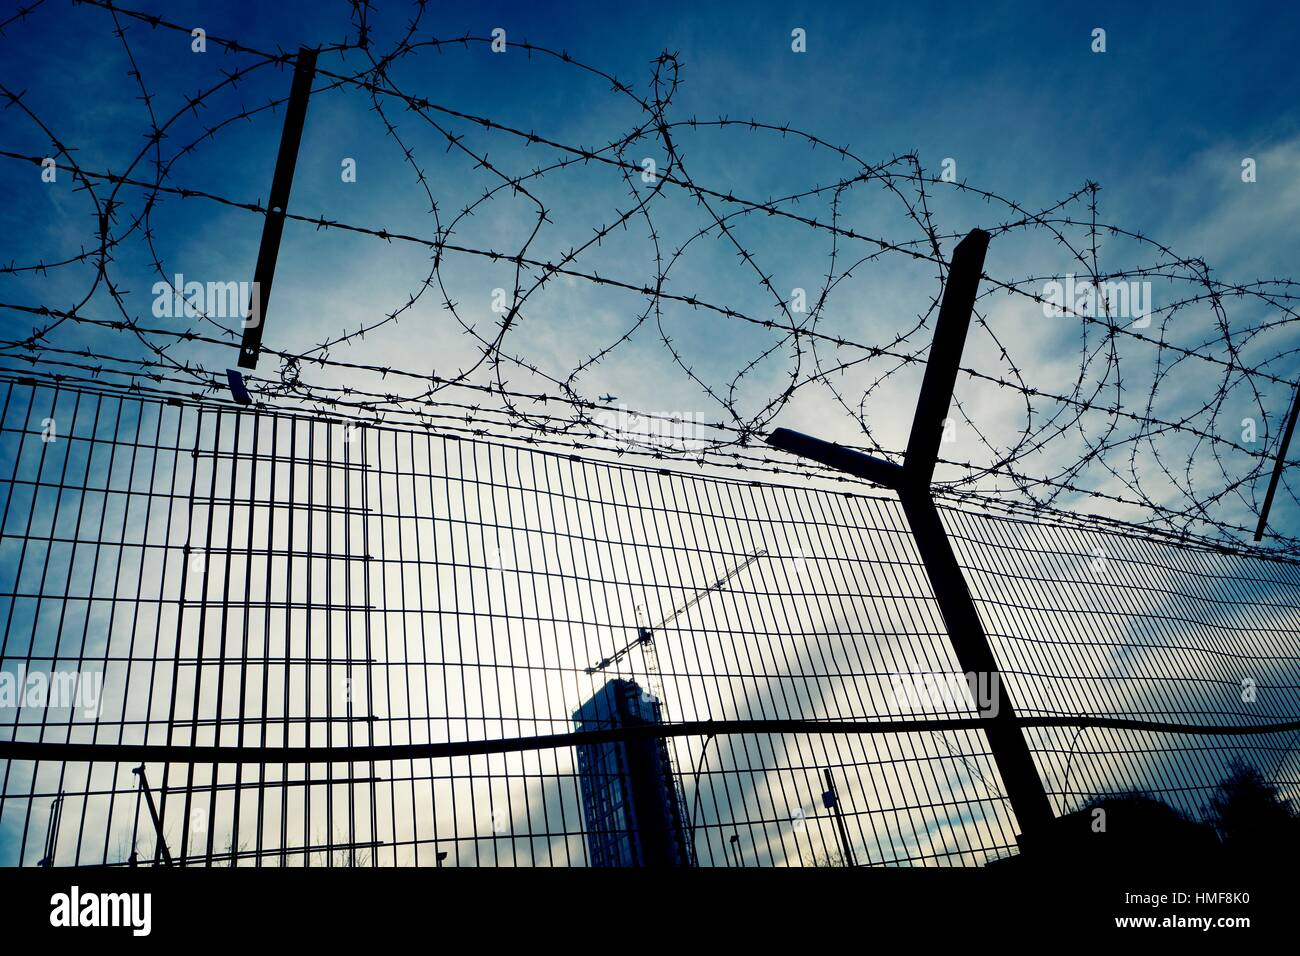 Building Wire Stock Photos & Building Wire Stock Images - Alamy